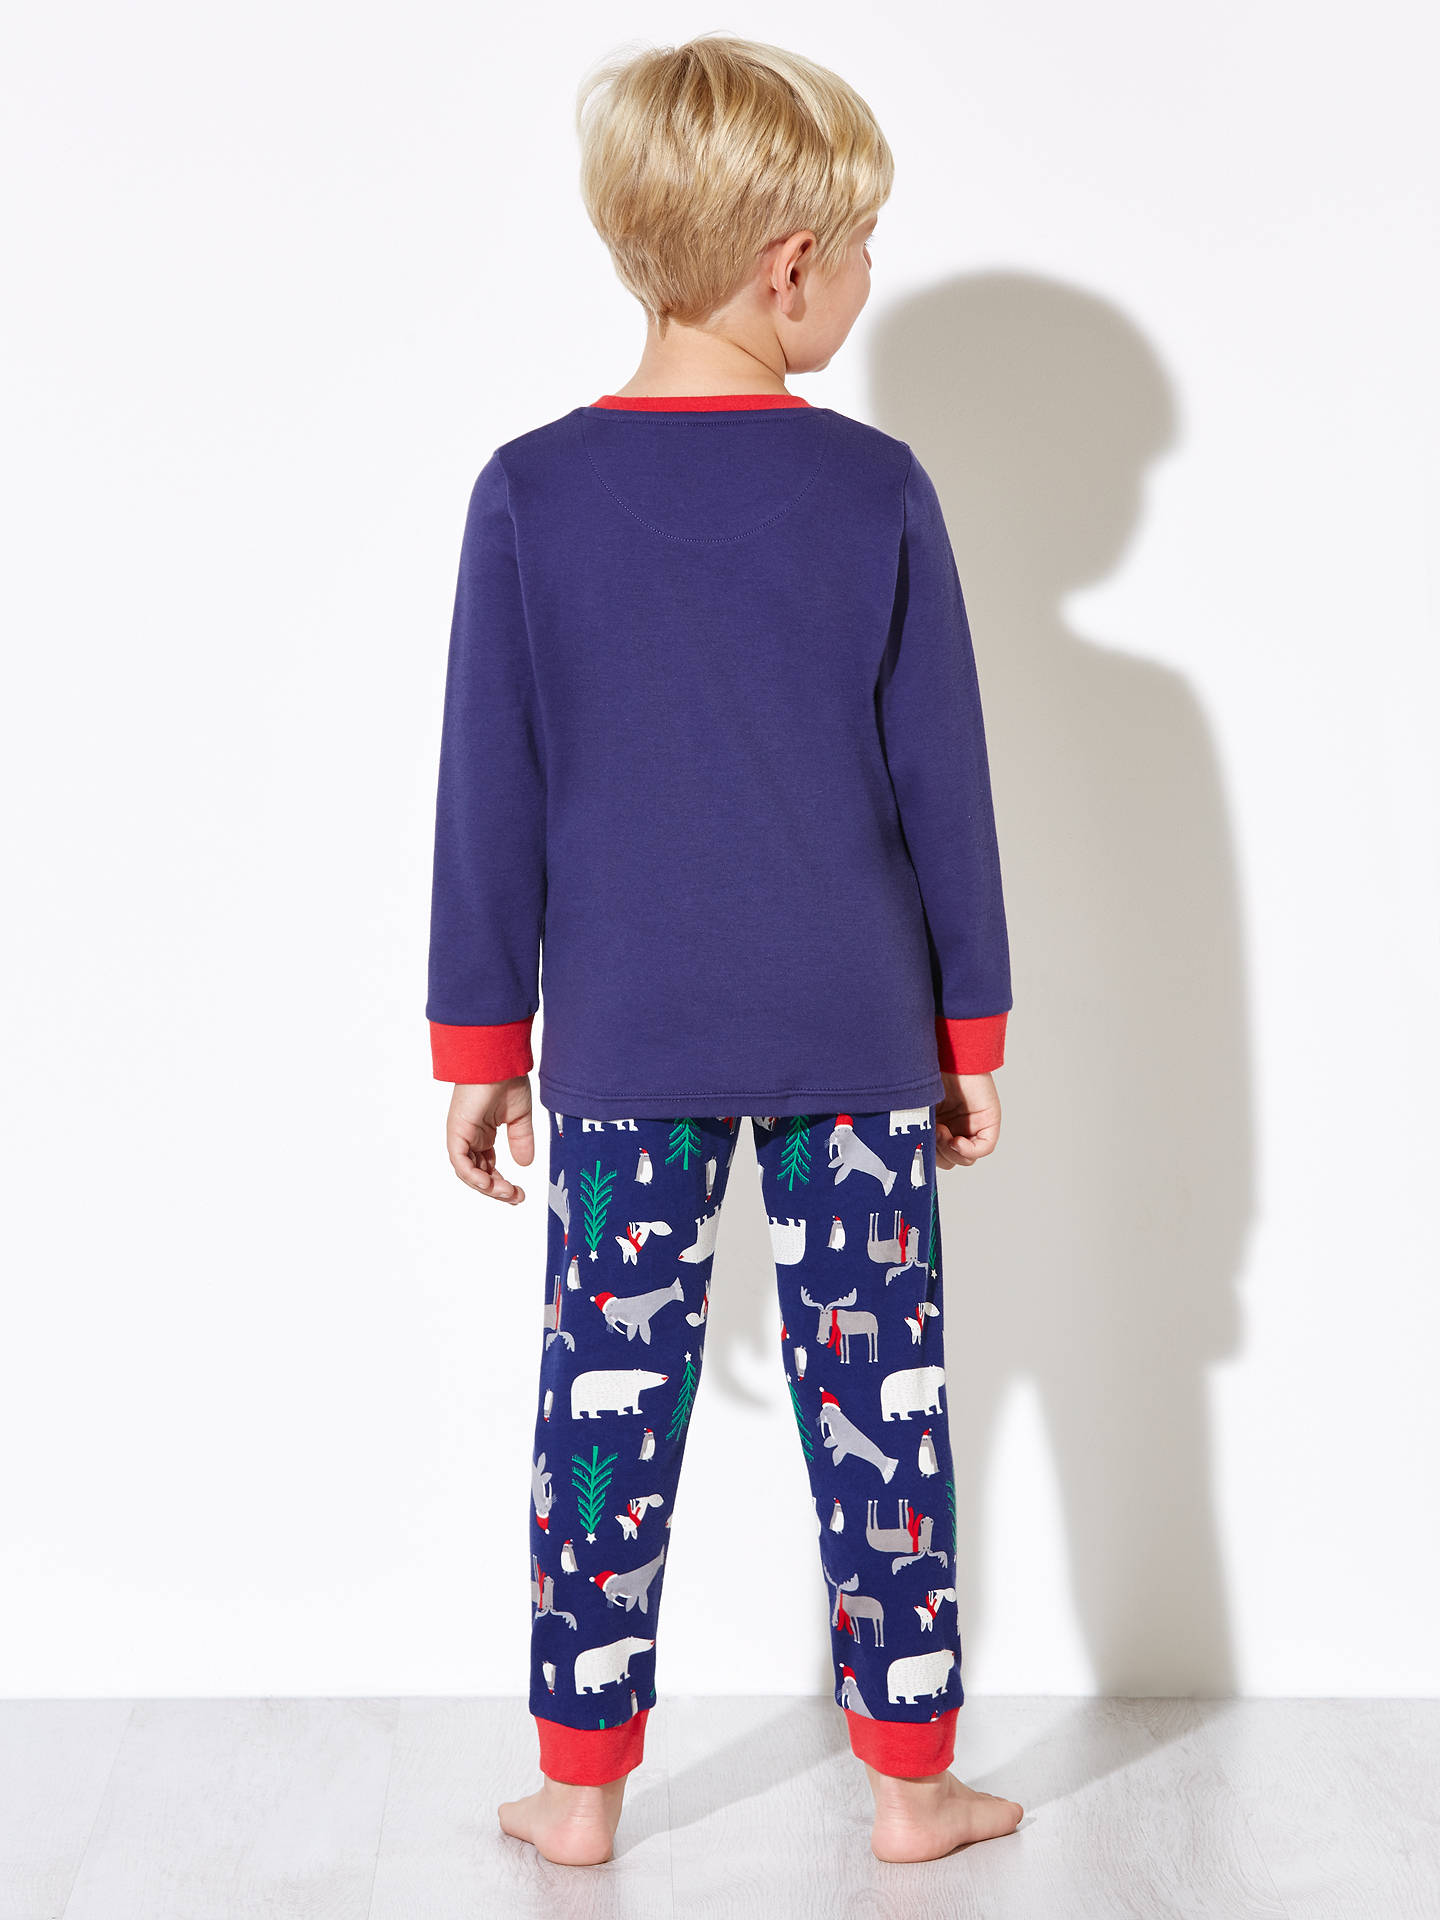 Buy John Lewis Boys' Polar Bear Pyjamas, Navy/Red, 2 years Online at johnlewis.com